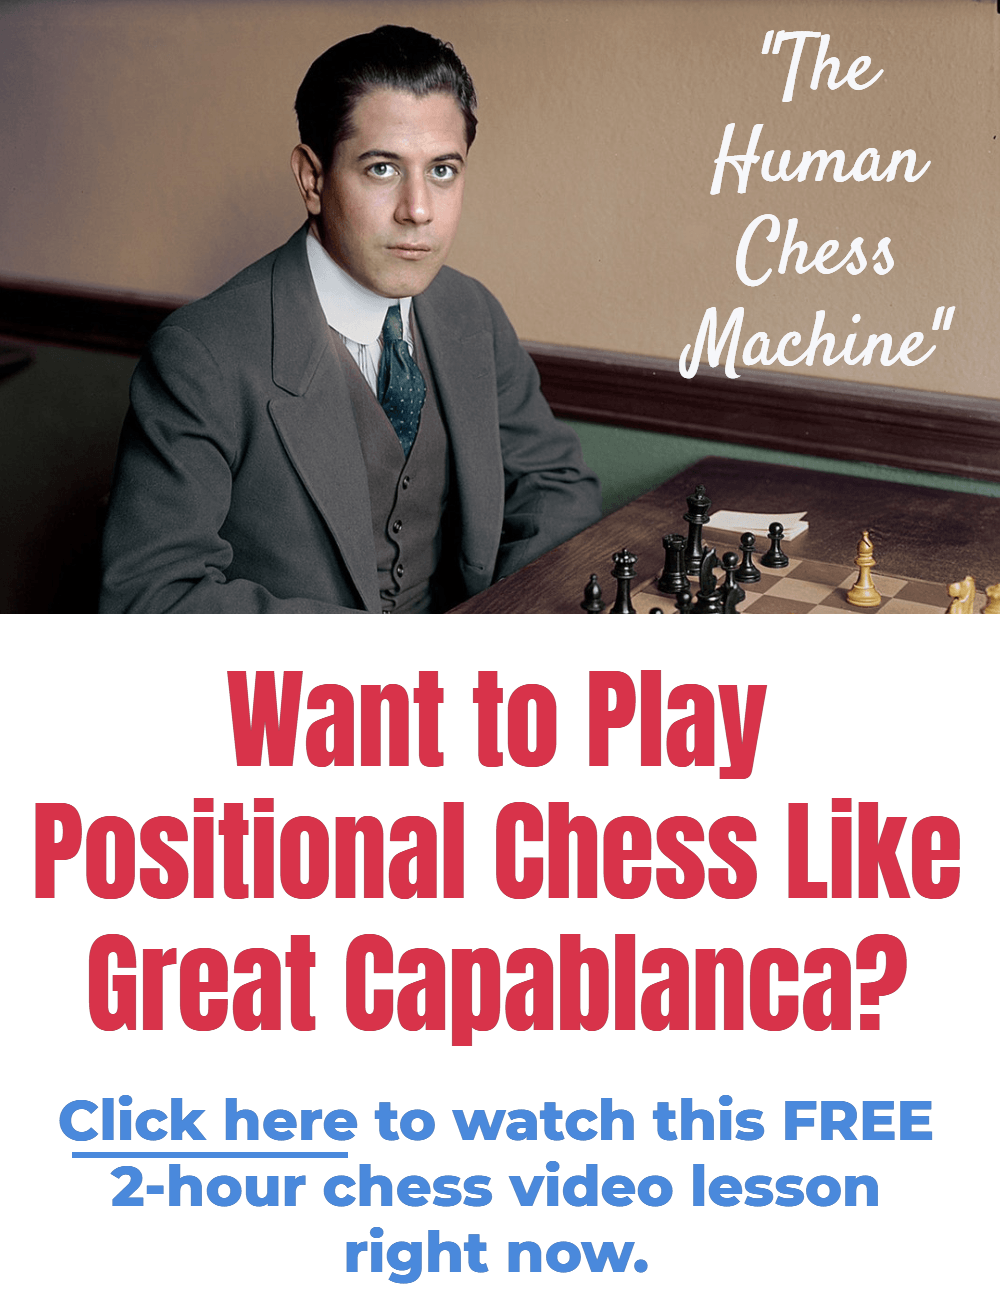 positional chess like capablanca